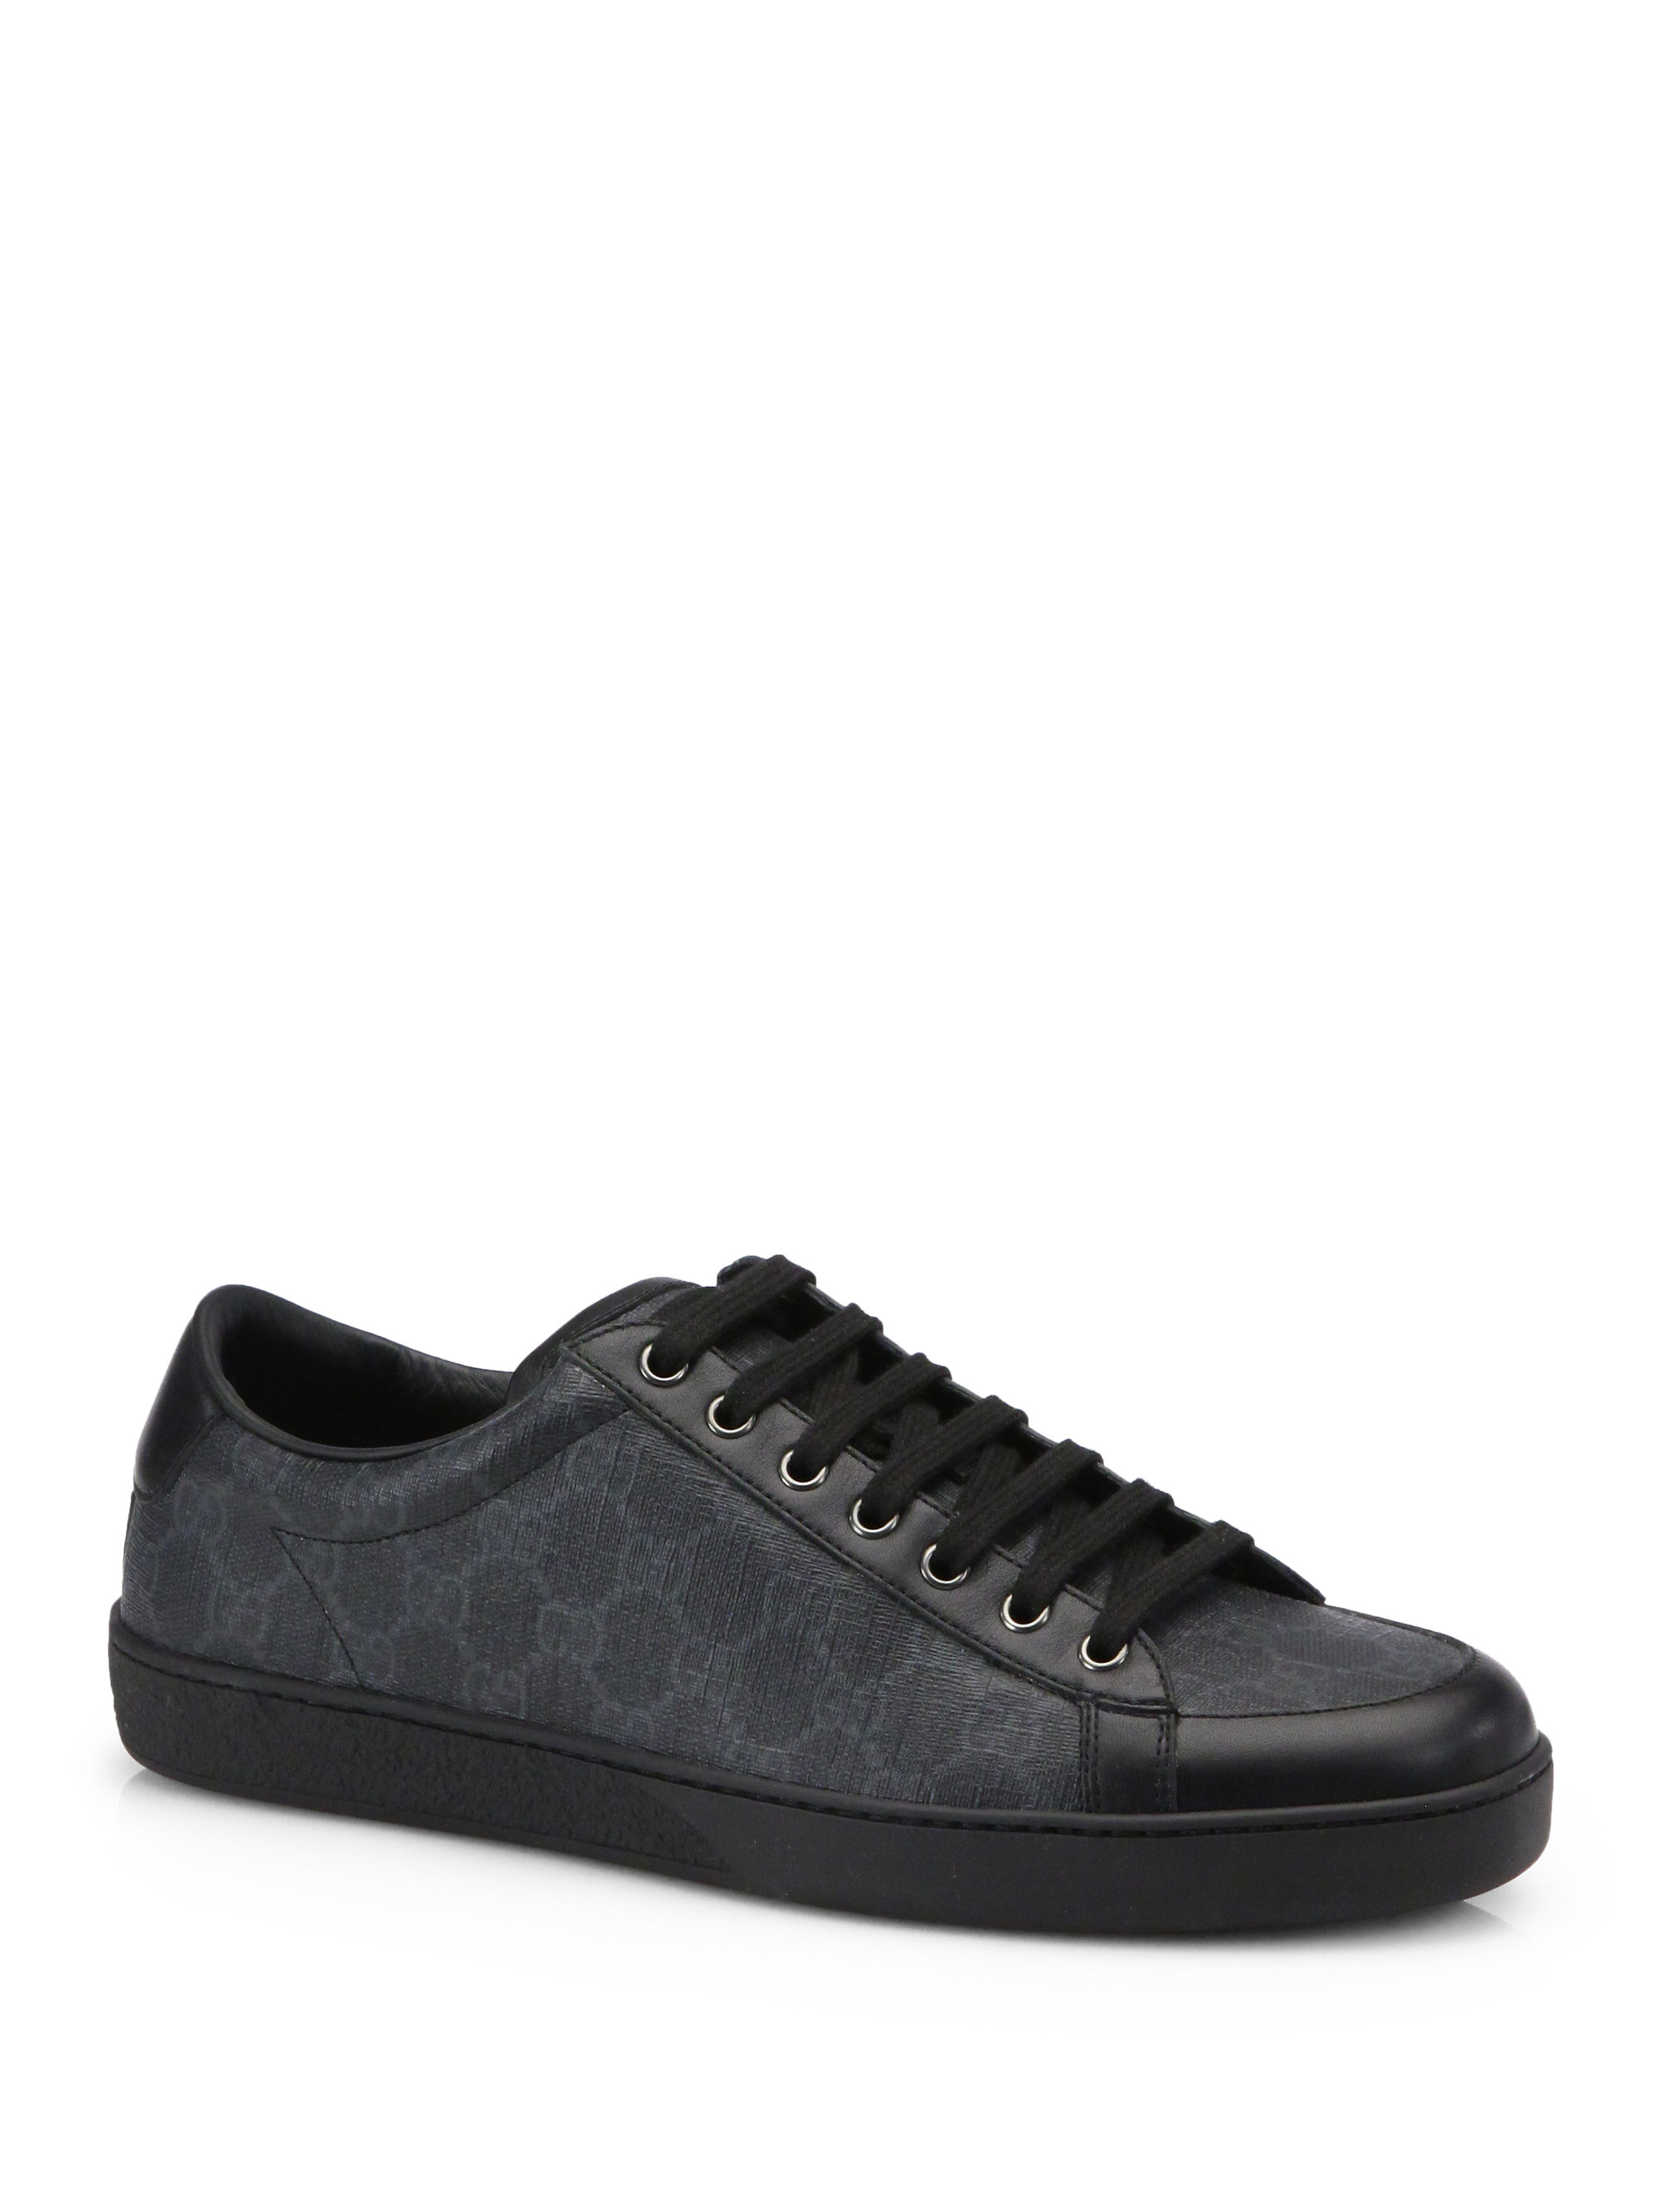 Gucci Brooklyn Gg Lace-up Sneakers in Black for Men